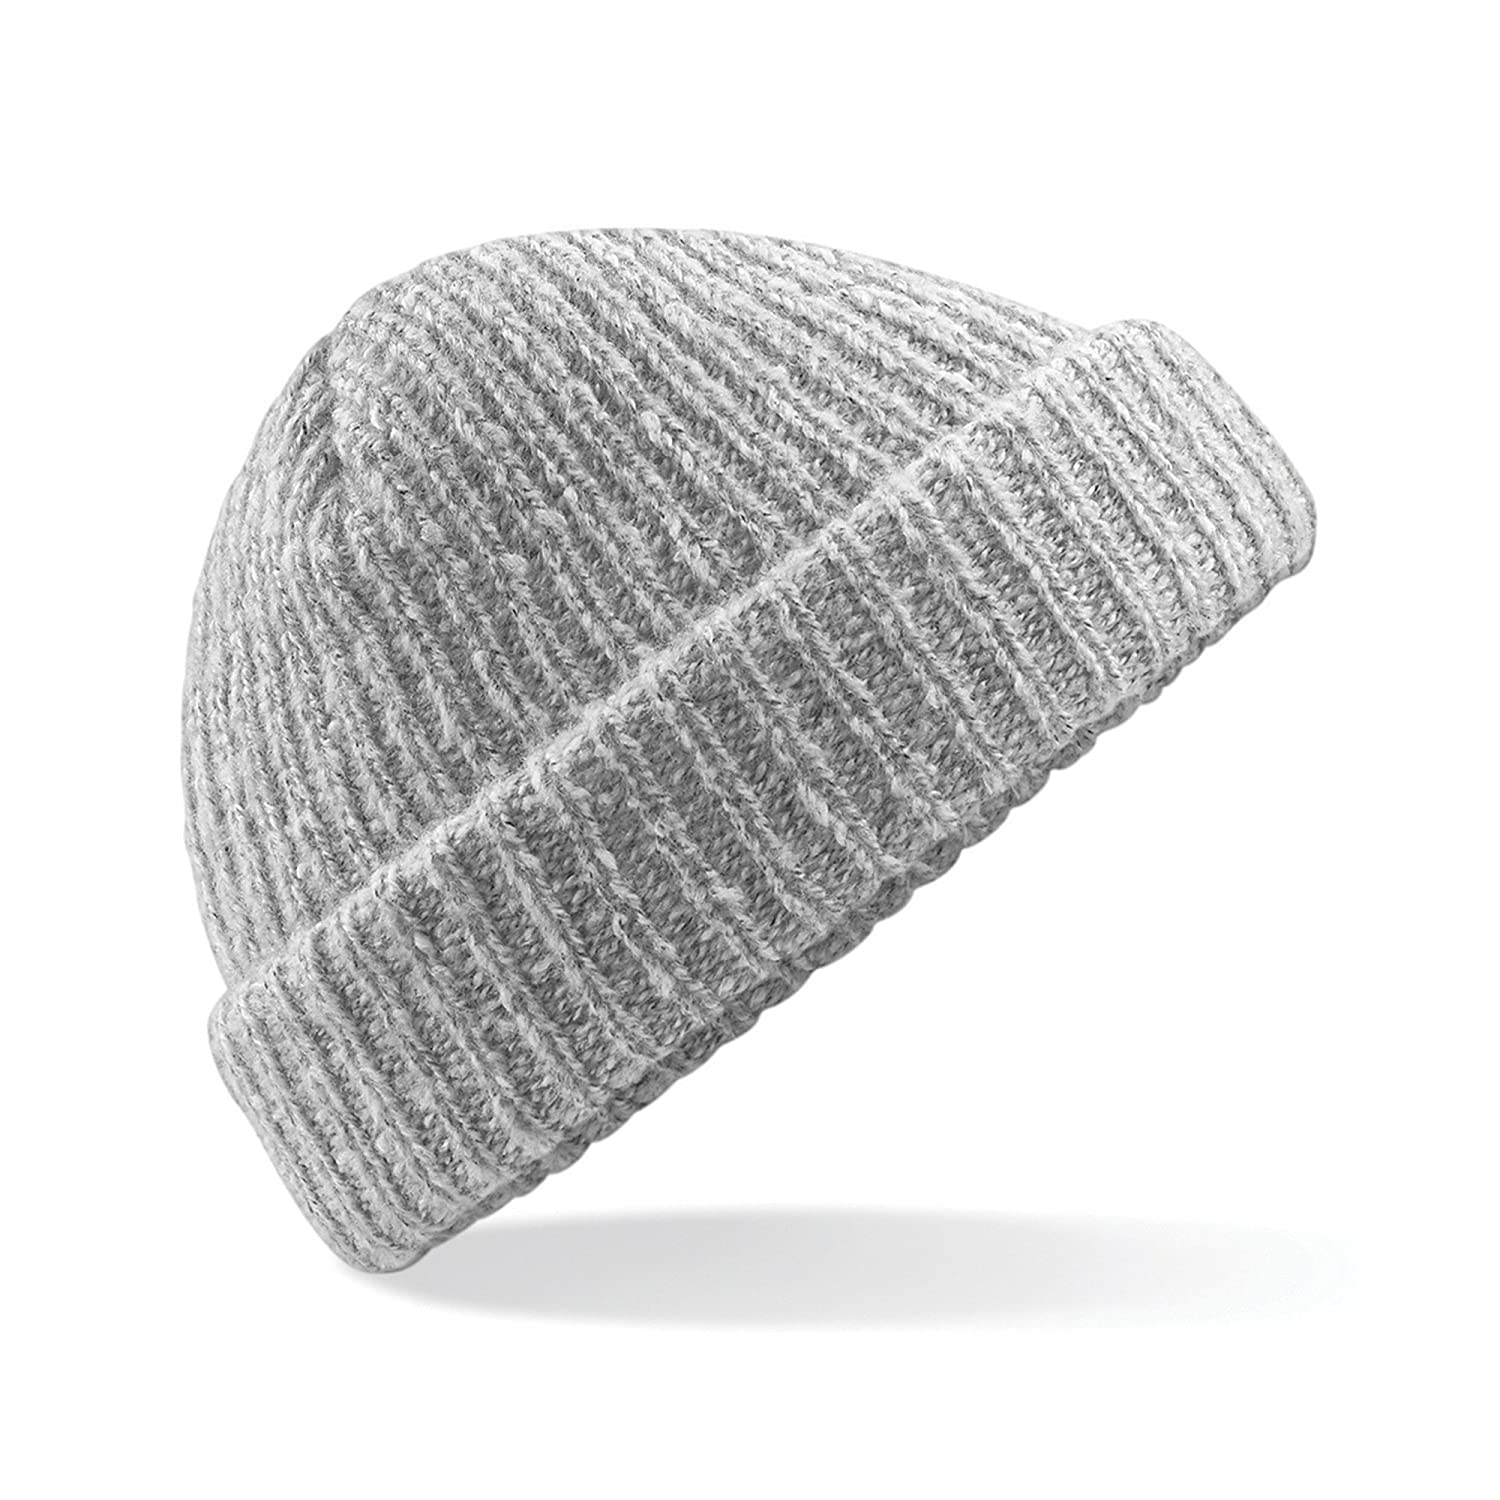 7cf95a7b301 Amazon.com  Beechfield Unisex Adults Glencoe Knitted Winter Beanie Hat (One  Size) (Black Fleck)  Clothing